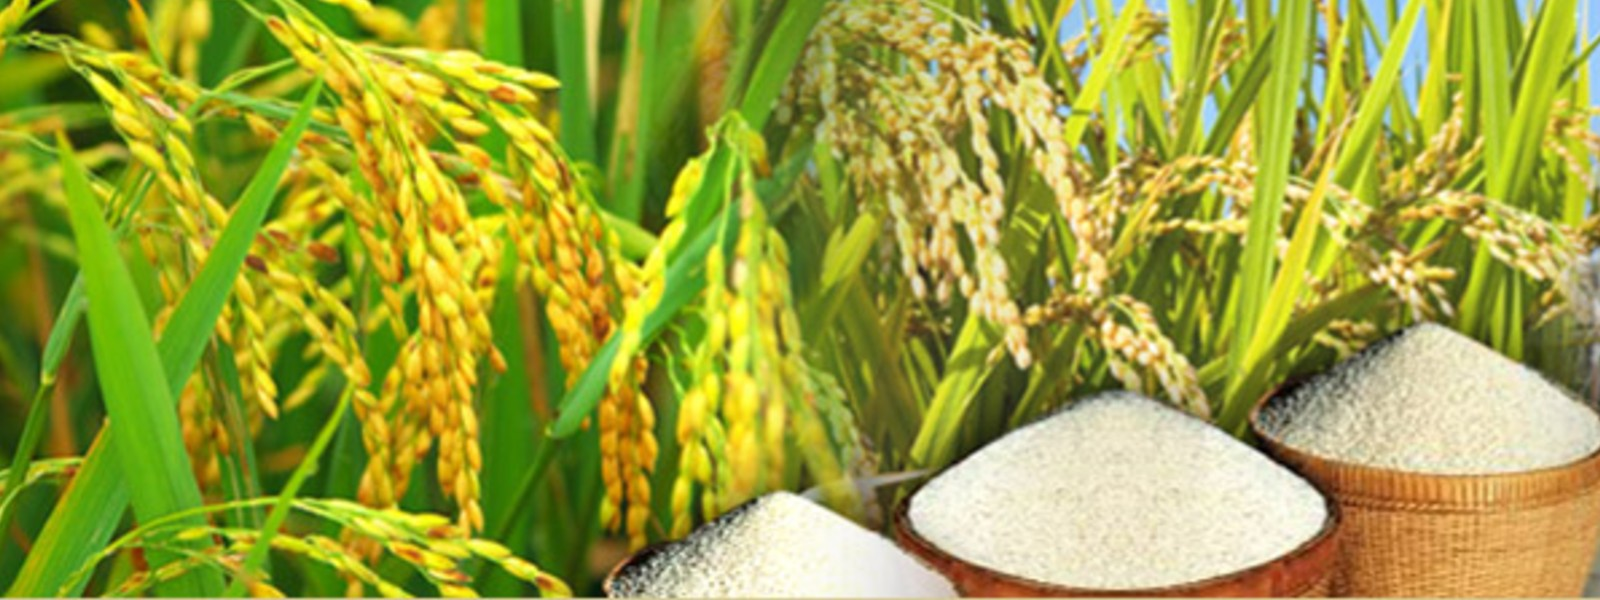 Paddy stocks to be sold via Sathosa after threshing them into rice